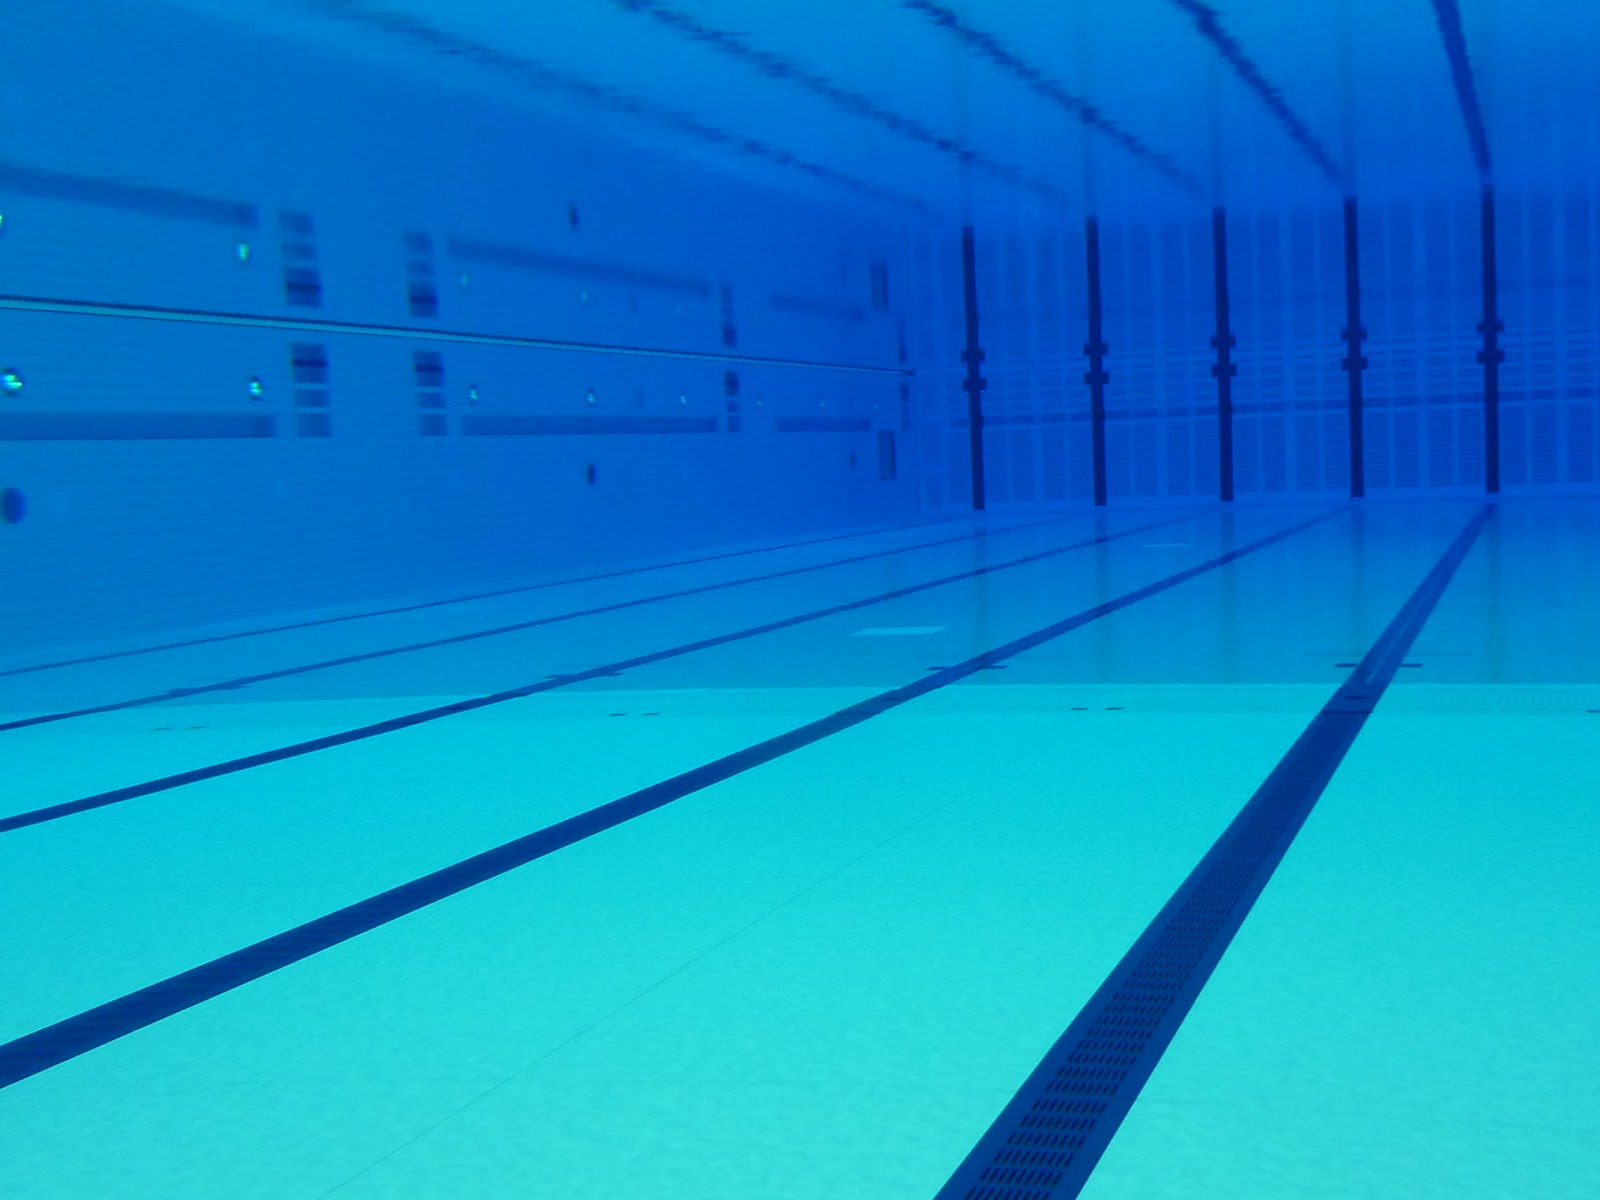 Olympic Swimming Pool Underwater images of olympic swimming pool underwater - #sc